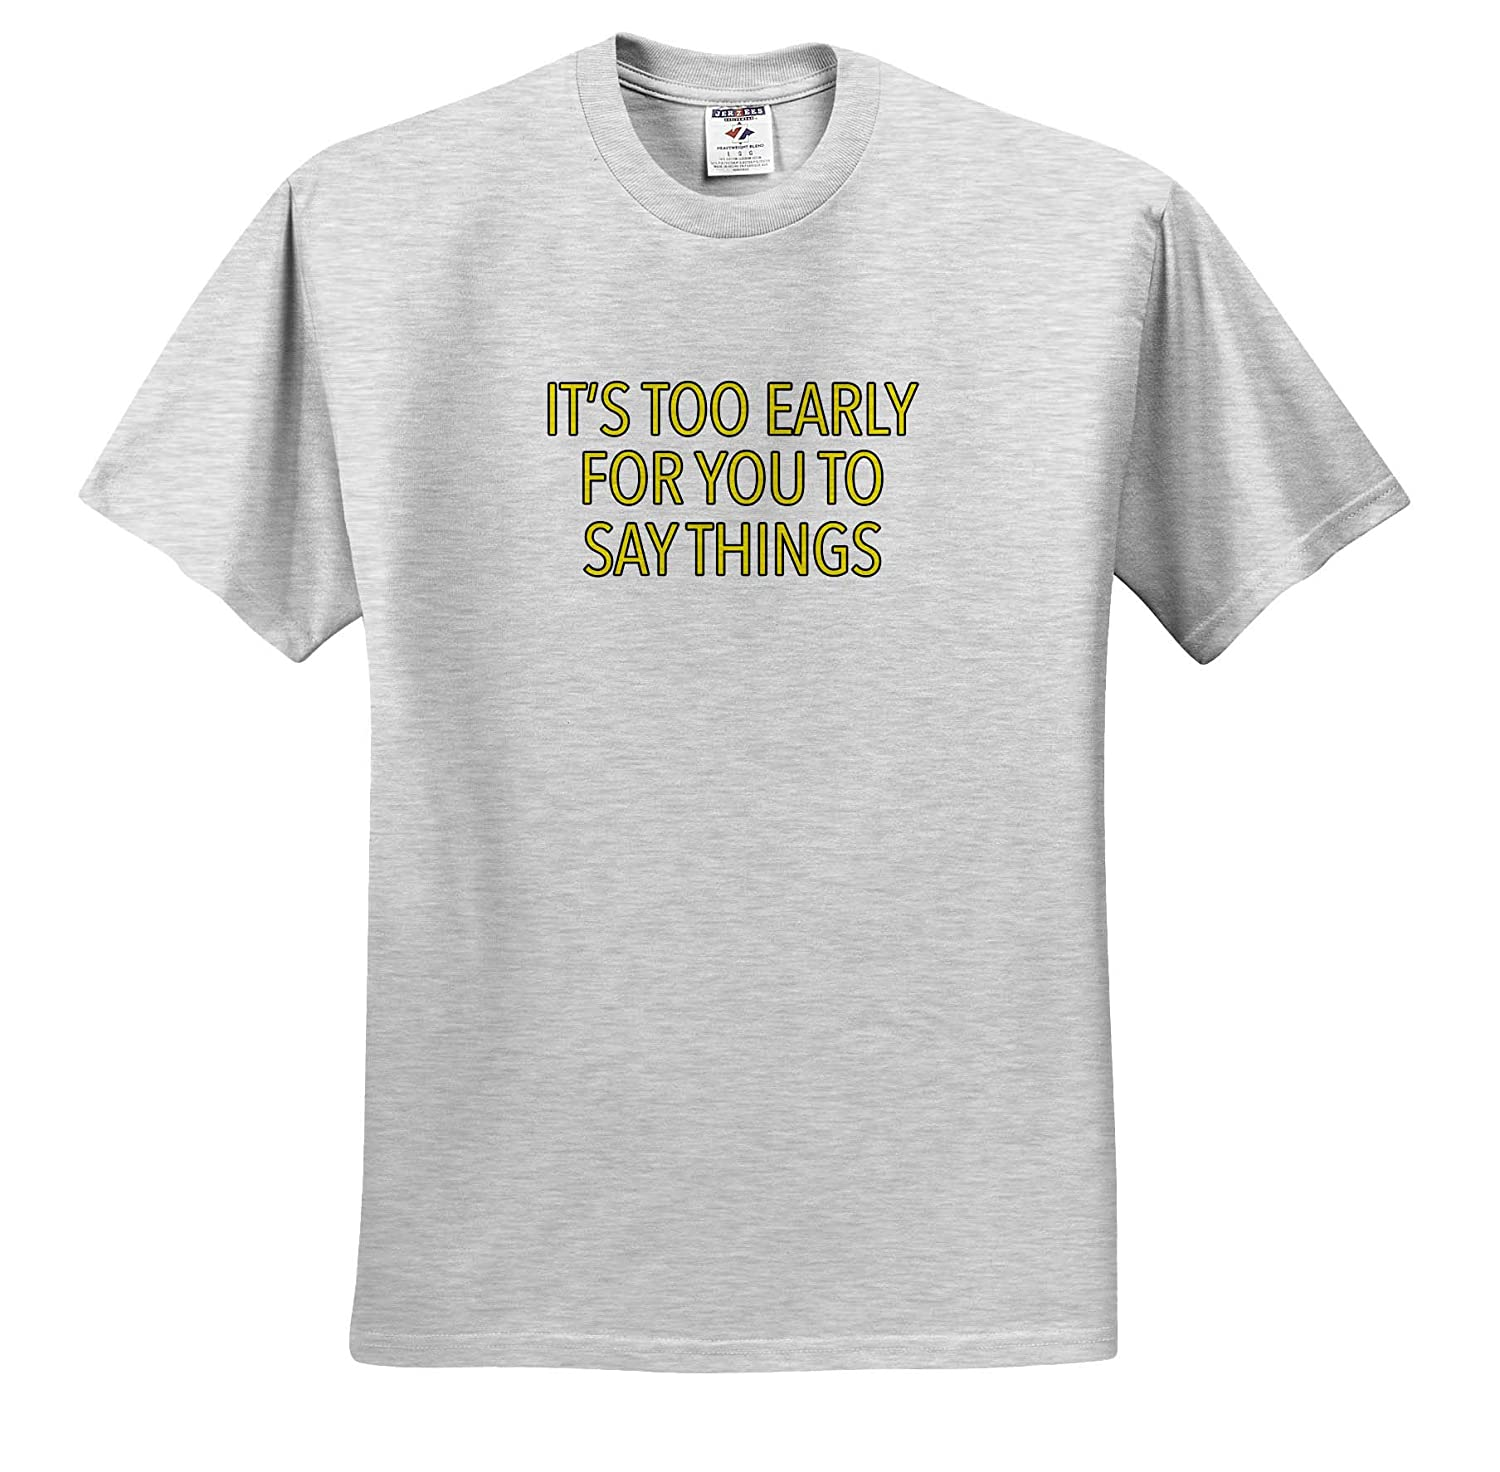 Adult T-Shirt XL ts/_315508 Funny Sayings 3dRose EvaDane Its Too Early for You to Say Things Yellow